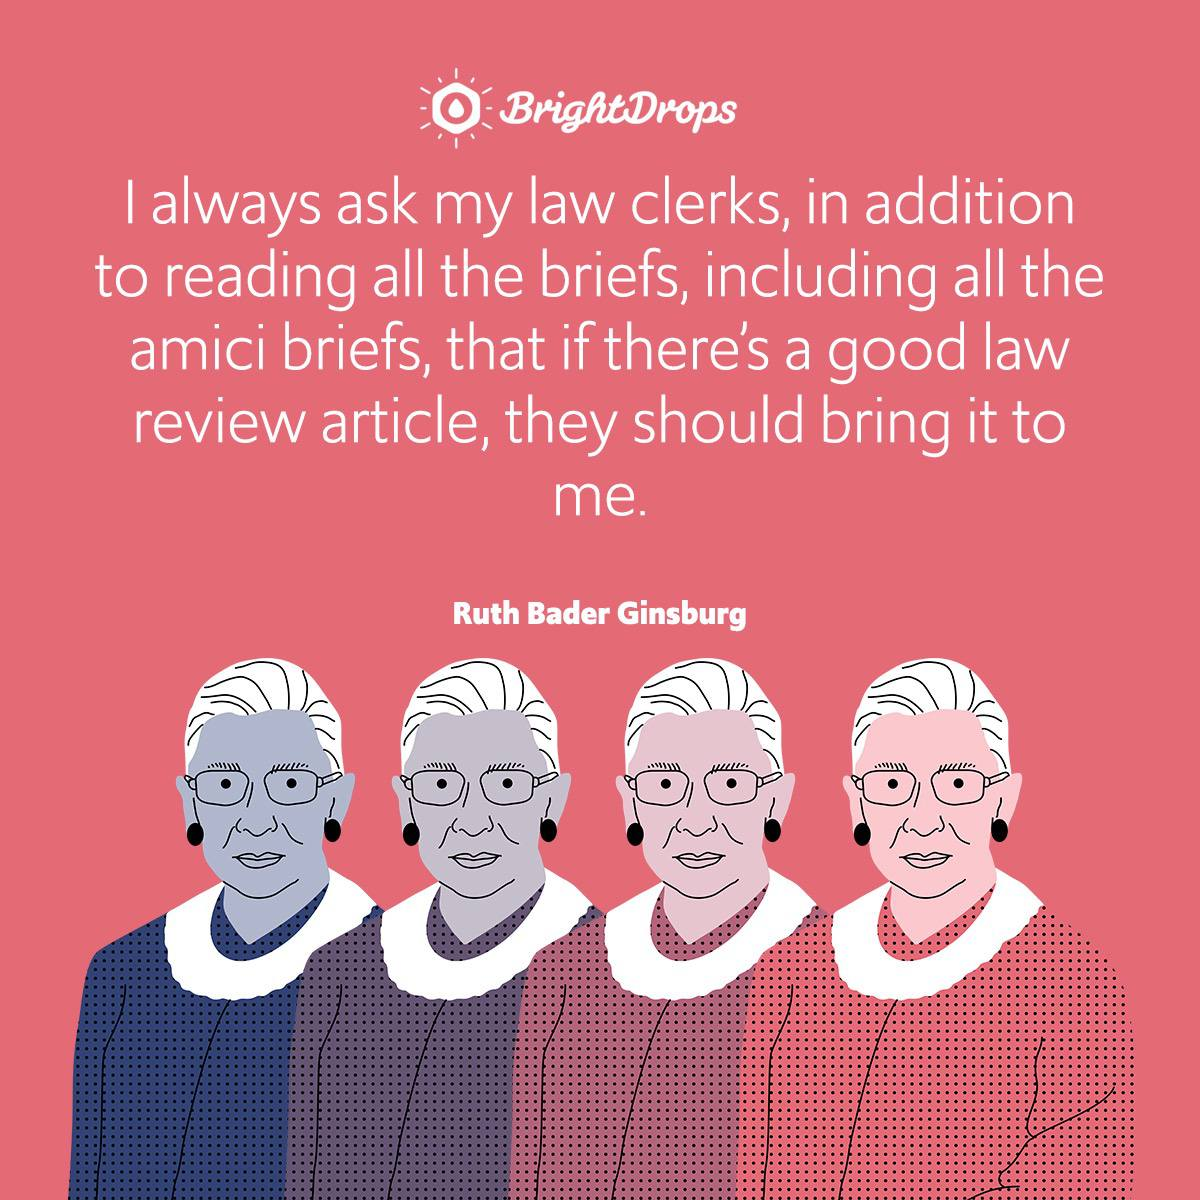 I always ask my law clerks, in addition to reading all the briefs, including all the amici briefs, that if there's a good law review article, they should bring it to me.